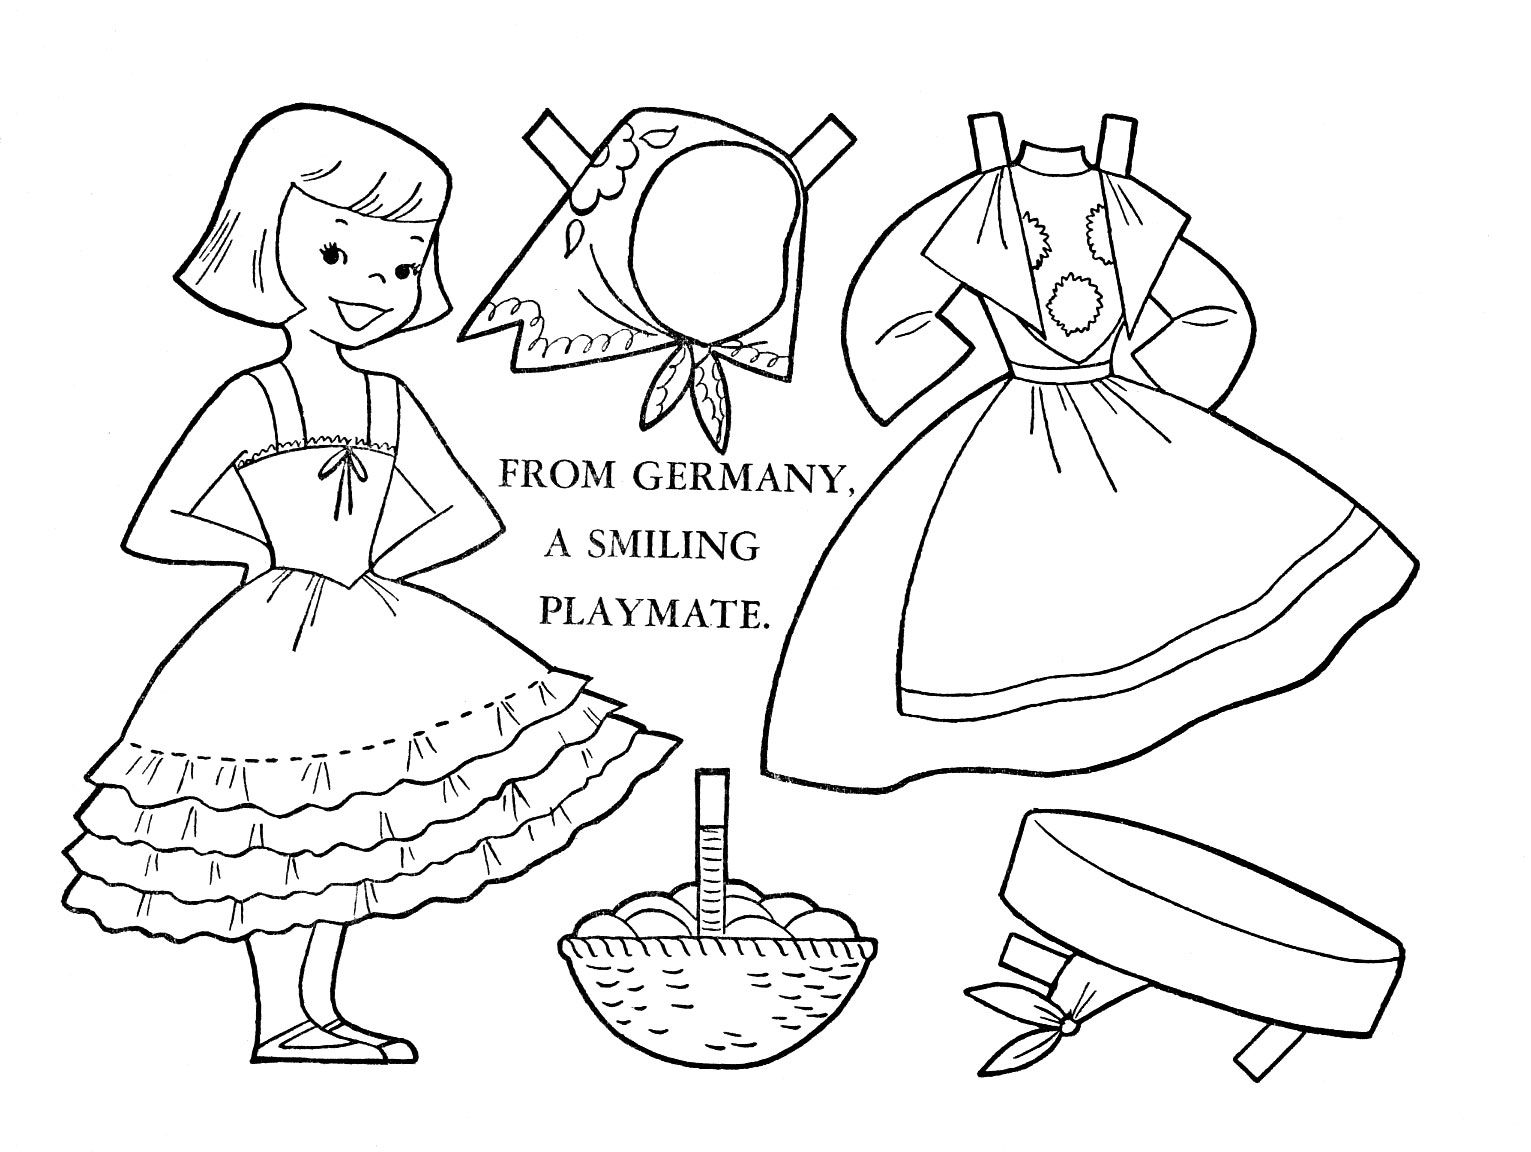 Germany 1 Jpg 1531 1152 Coloring Pages Paper Dolls Coloring Pages For Kids